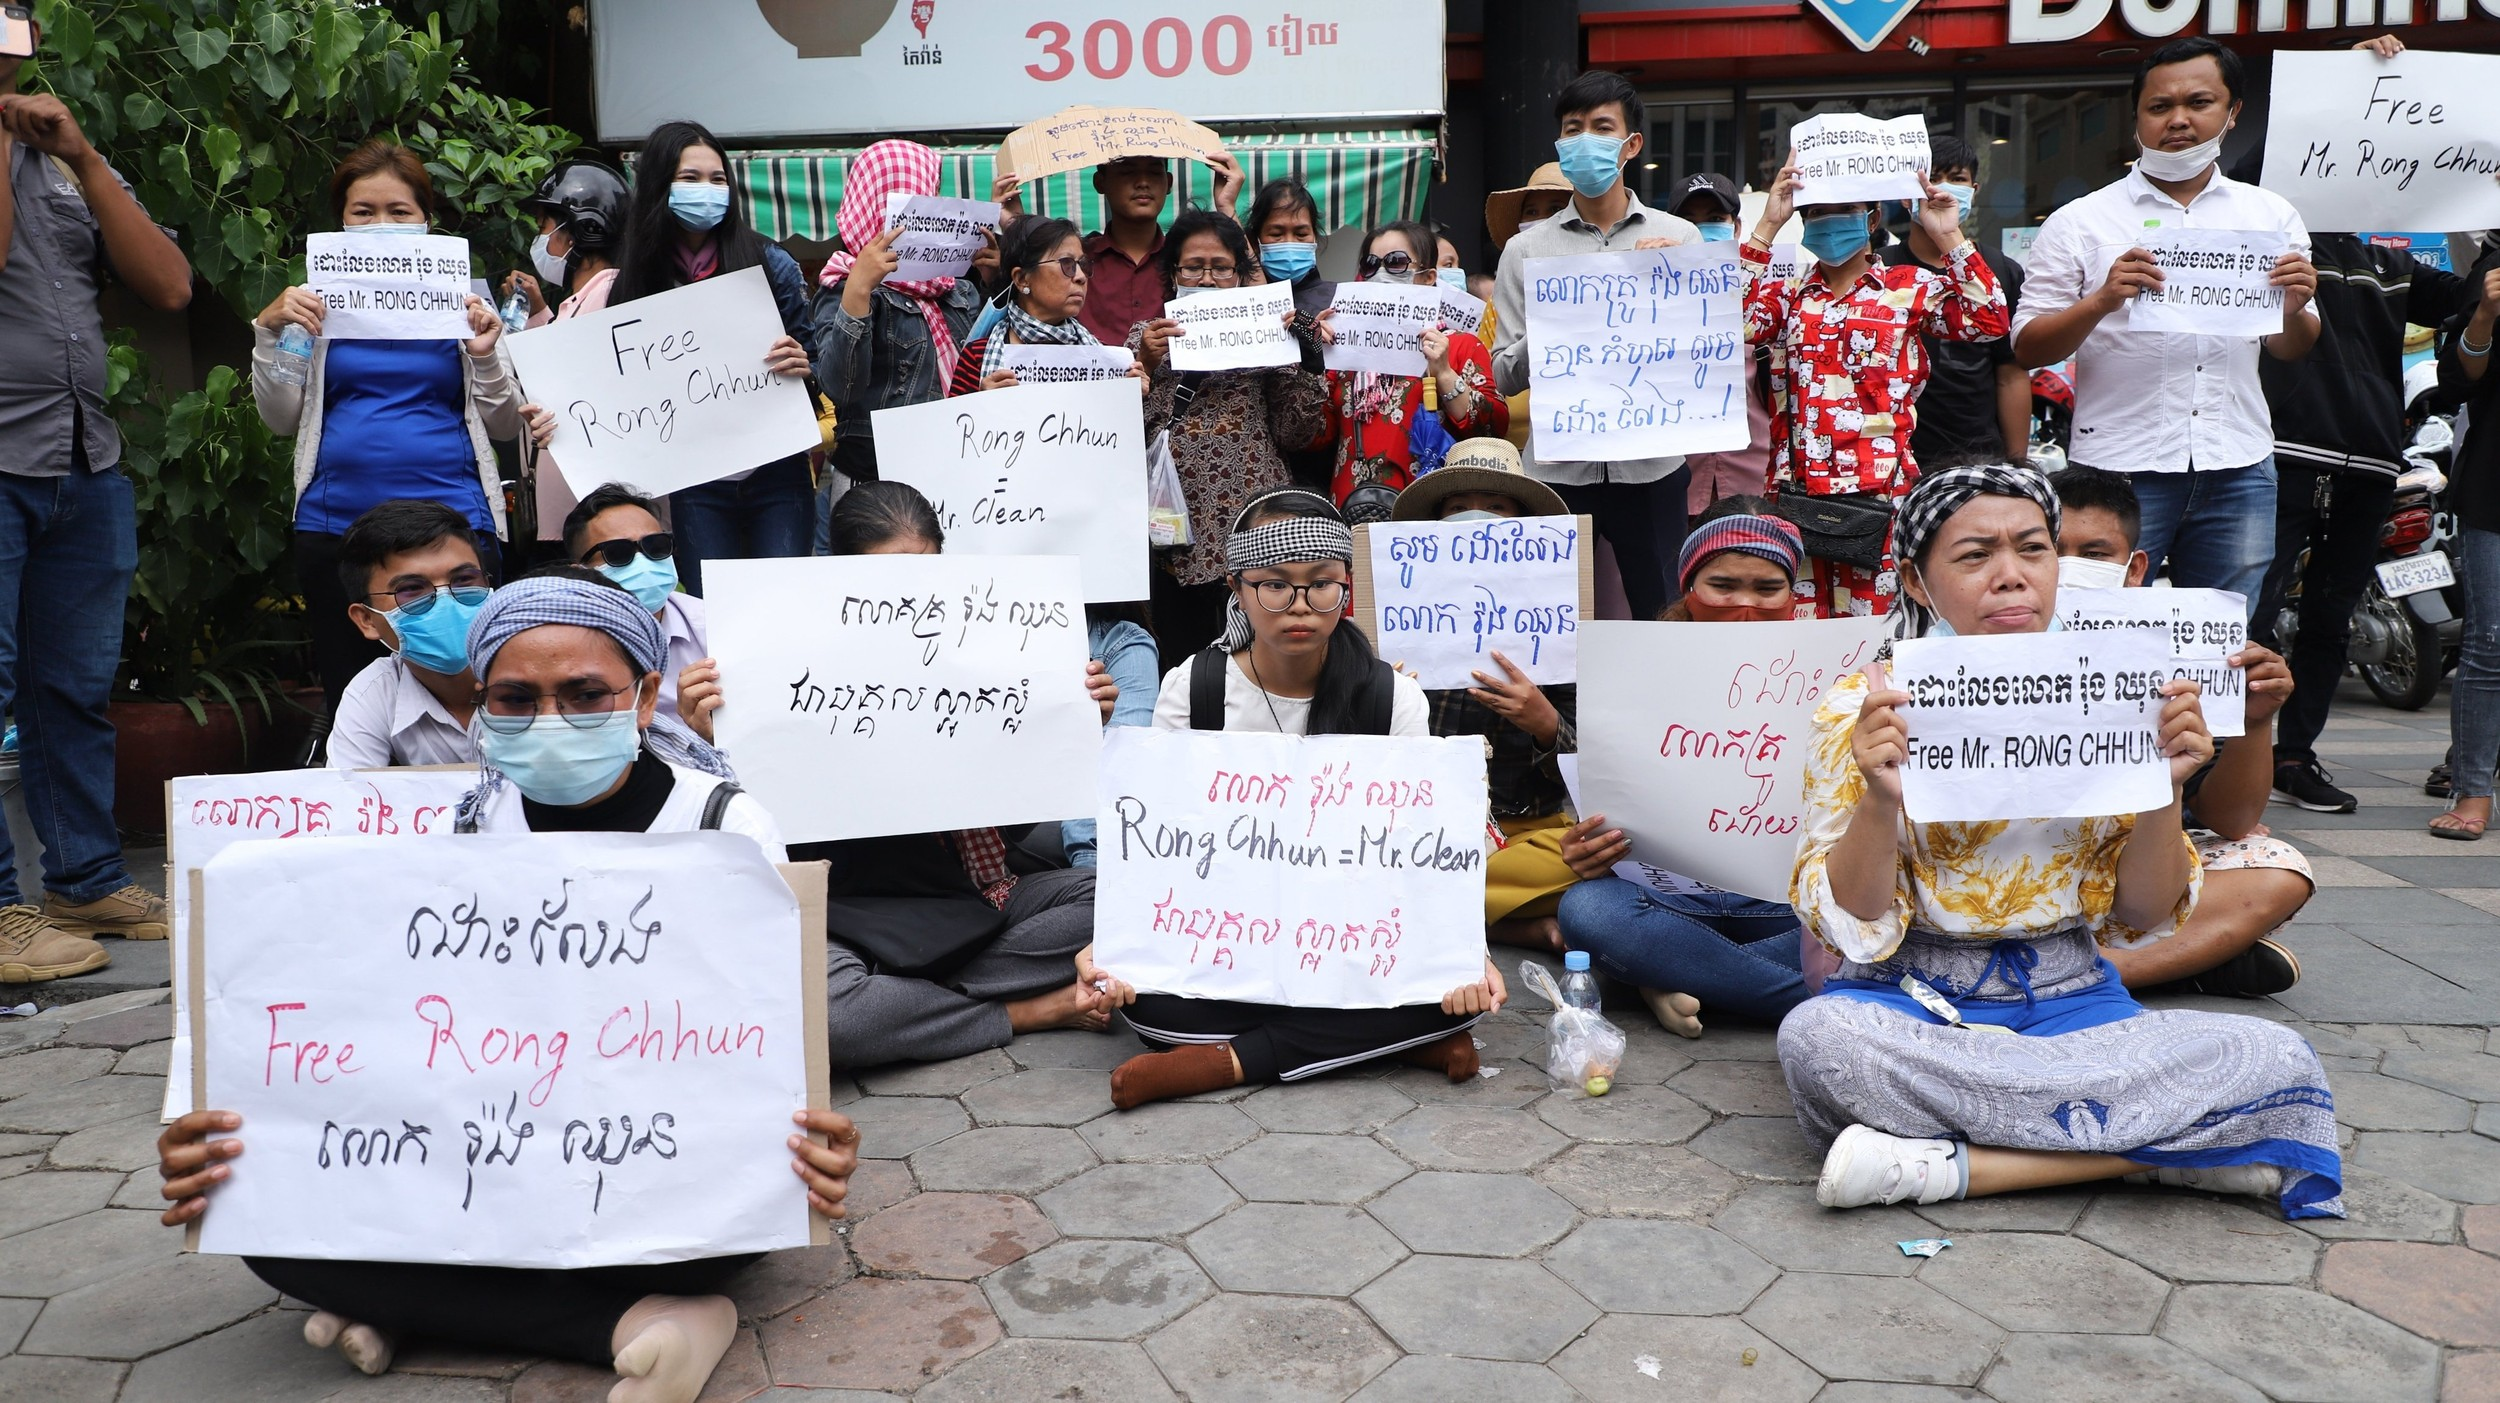 Protesters call outside Phnom Penh's Municipal Court for the release of Cambodian union leader Rong Chhun, Aug. 5, 2020.